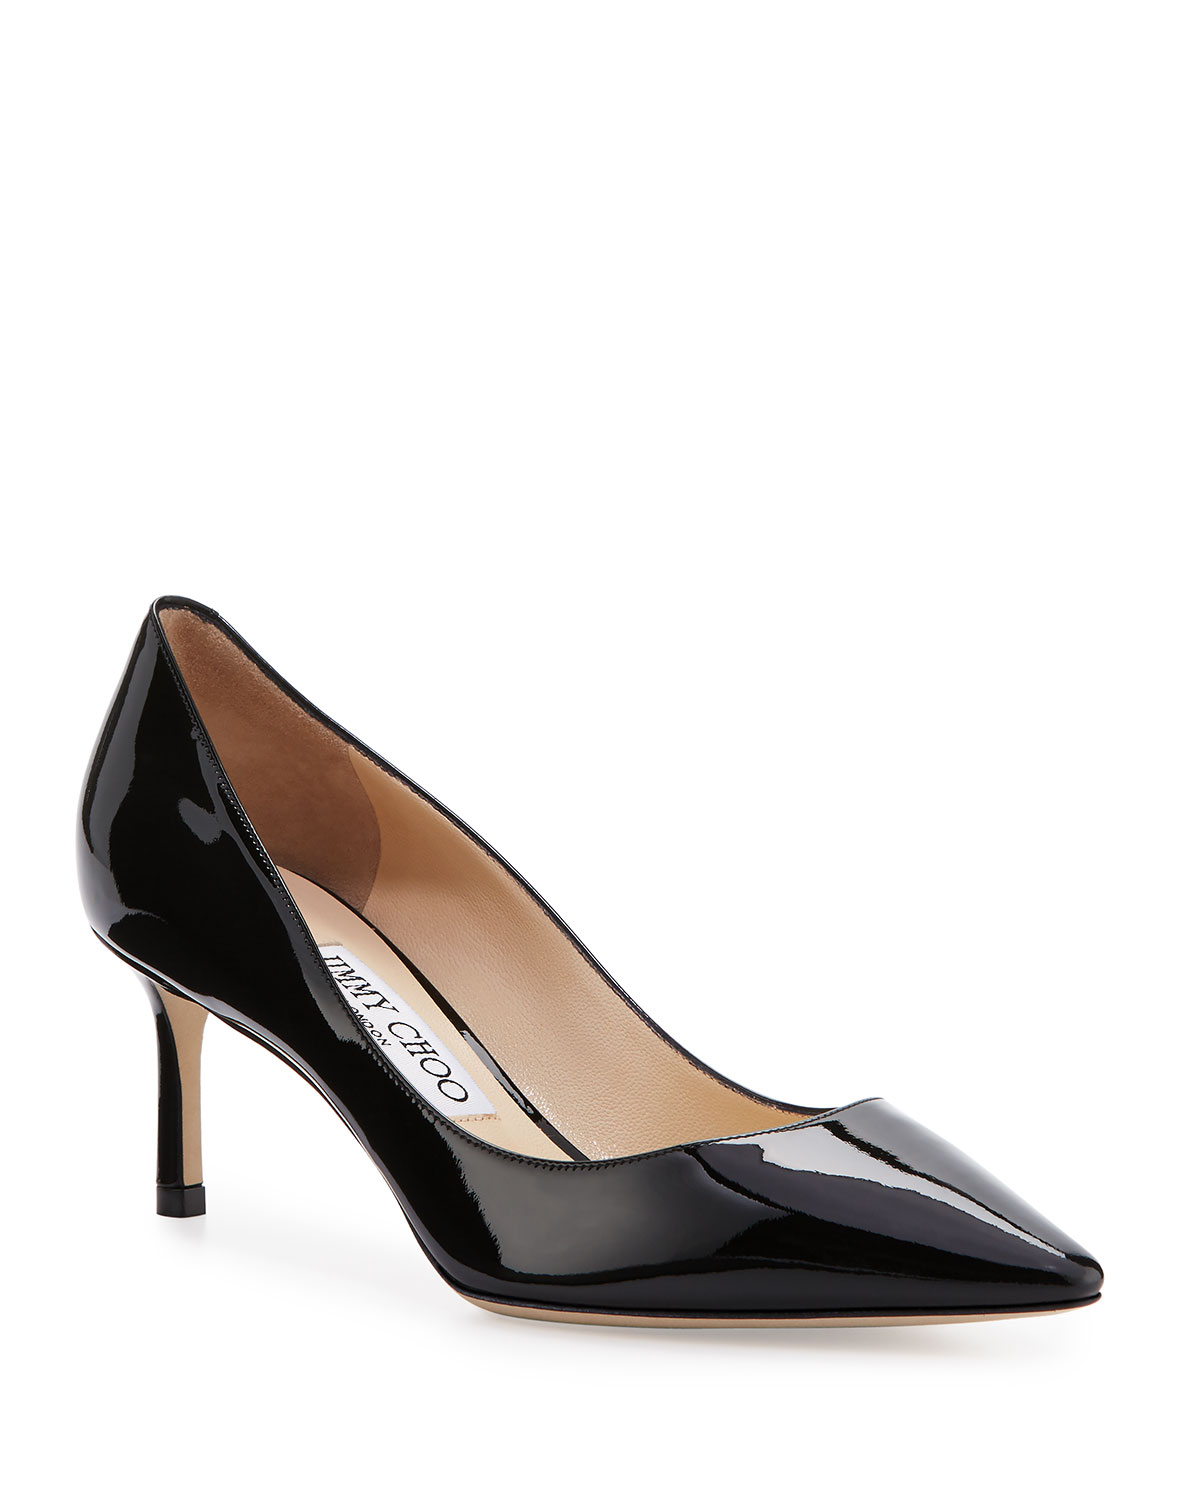 96ae71703ca Jimmy Choo Romy 60mm Patent Pointed-Toe Pumps